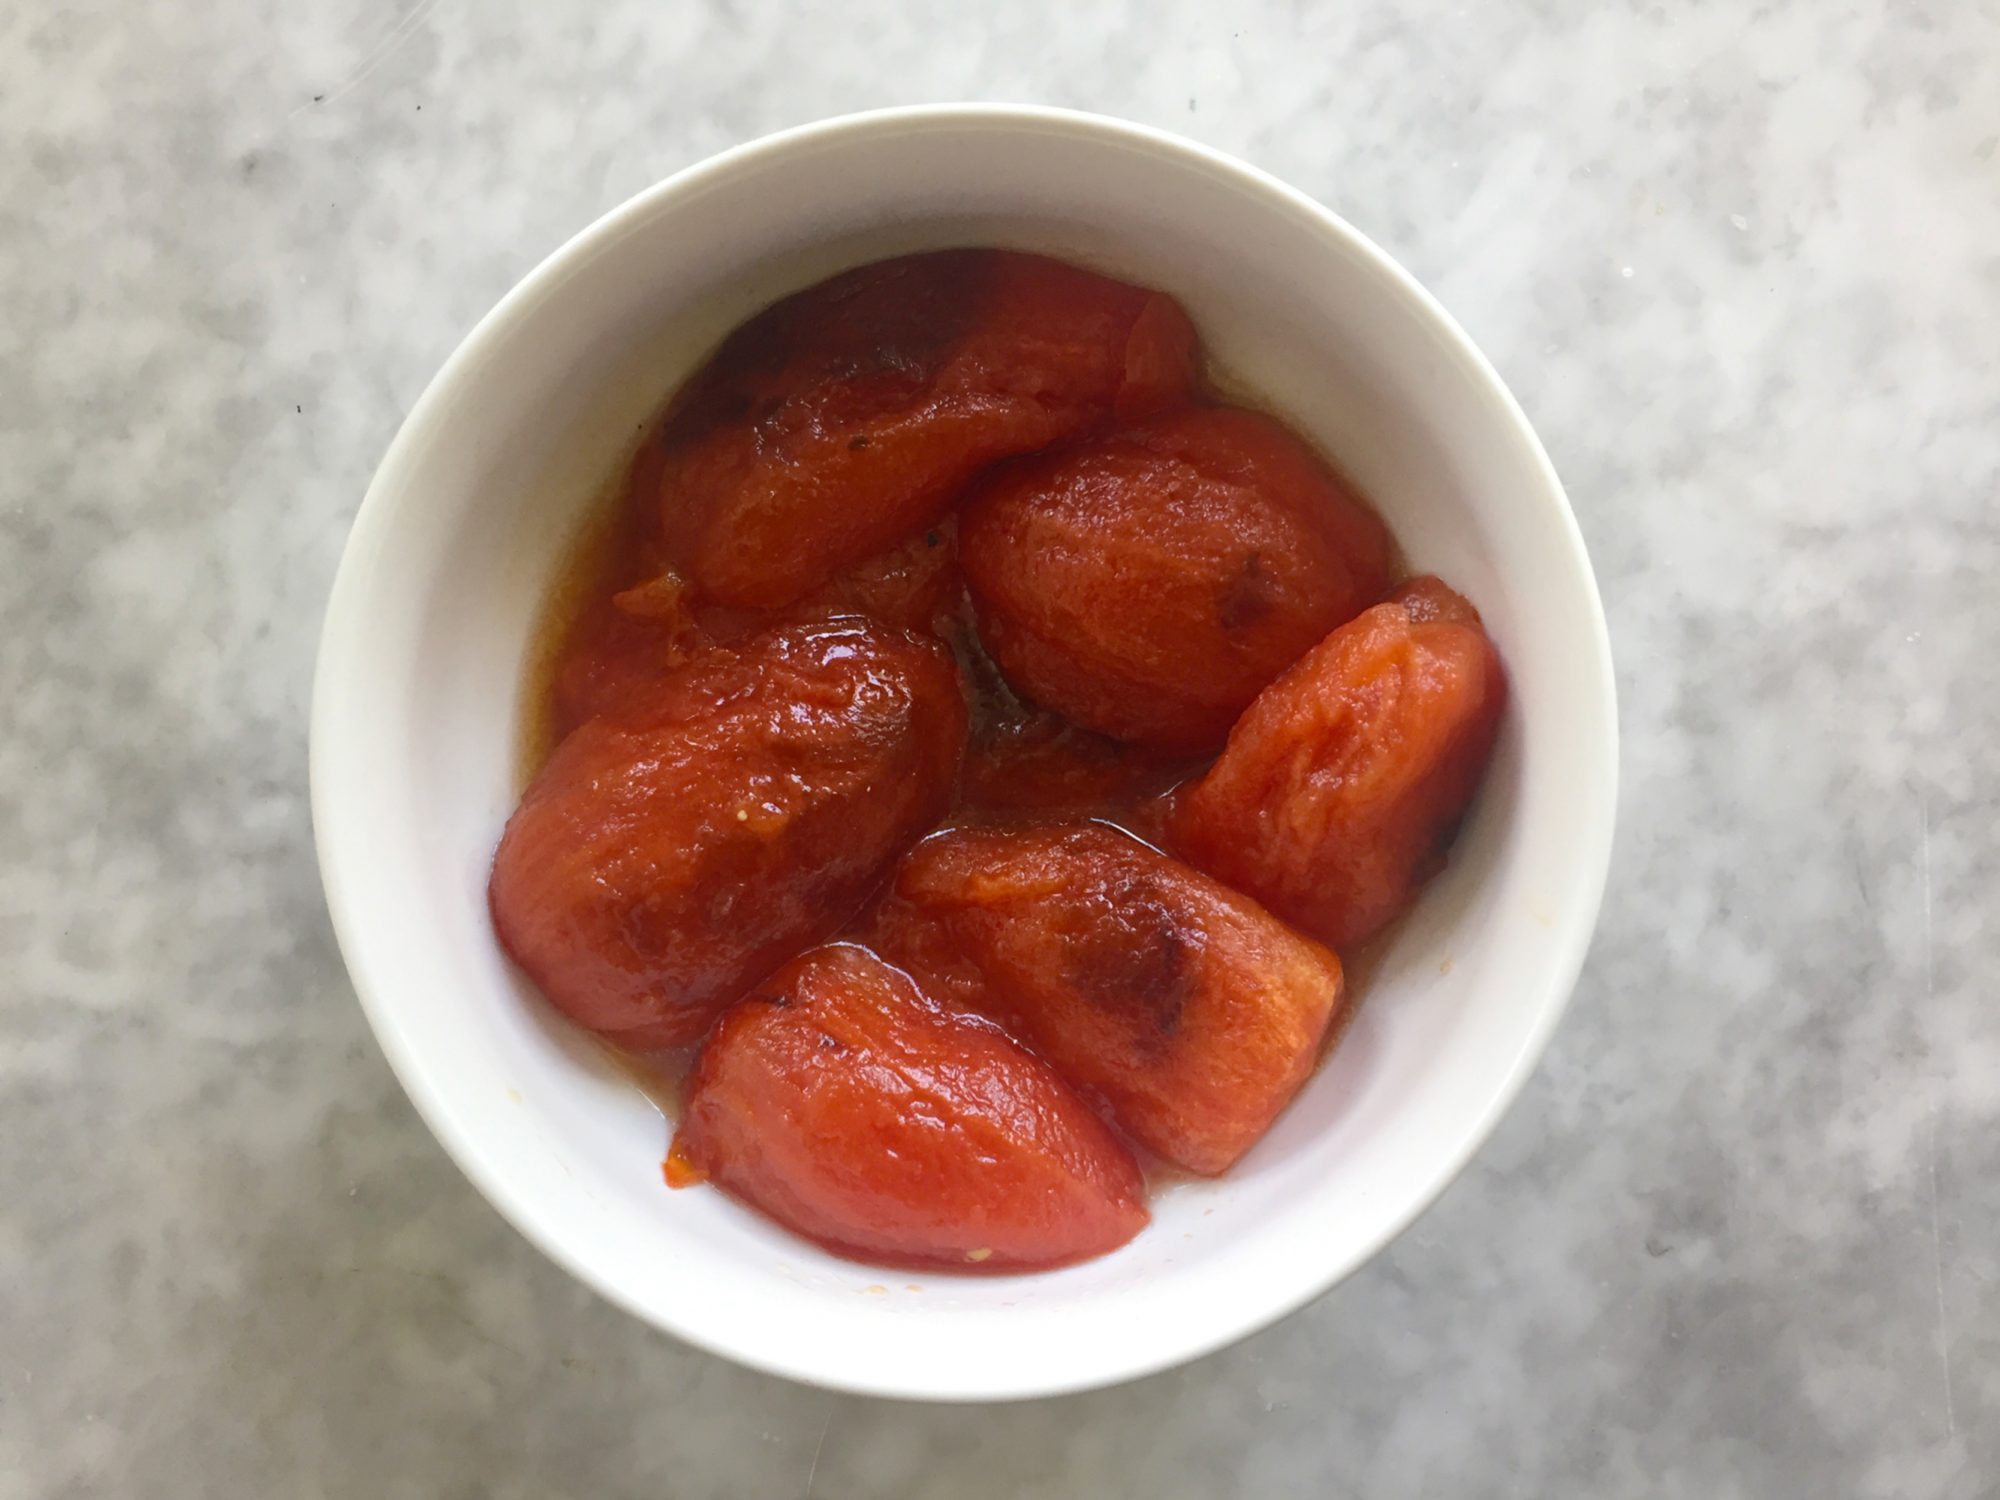 Fire-roasted tomatoes without skins in bowls.